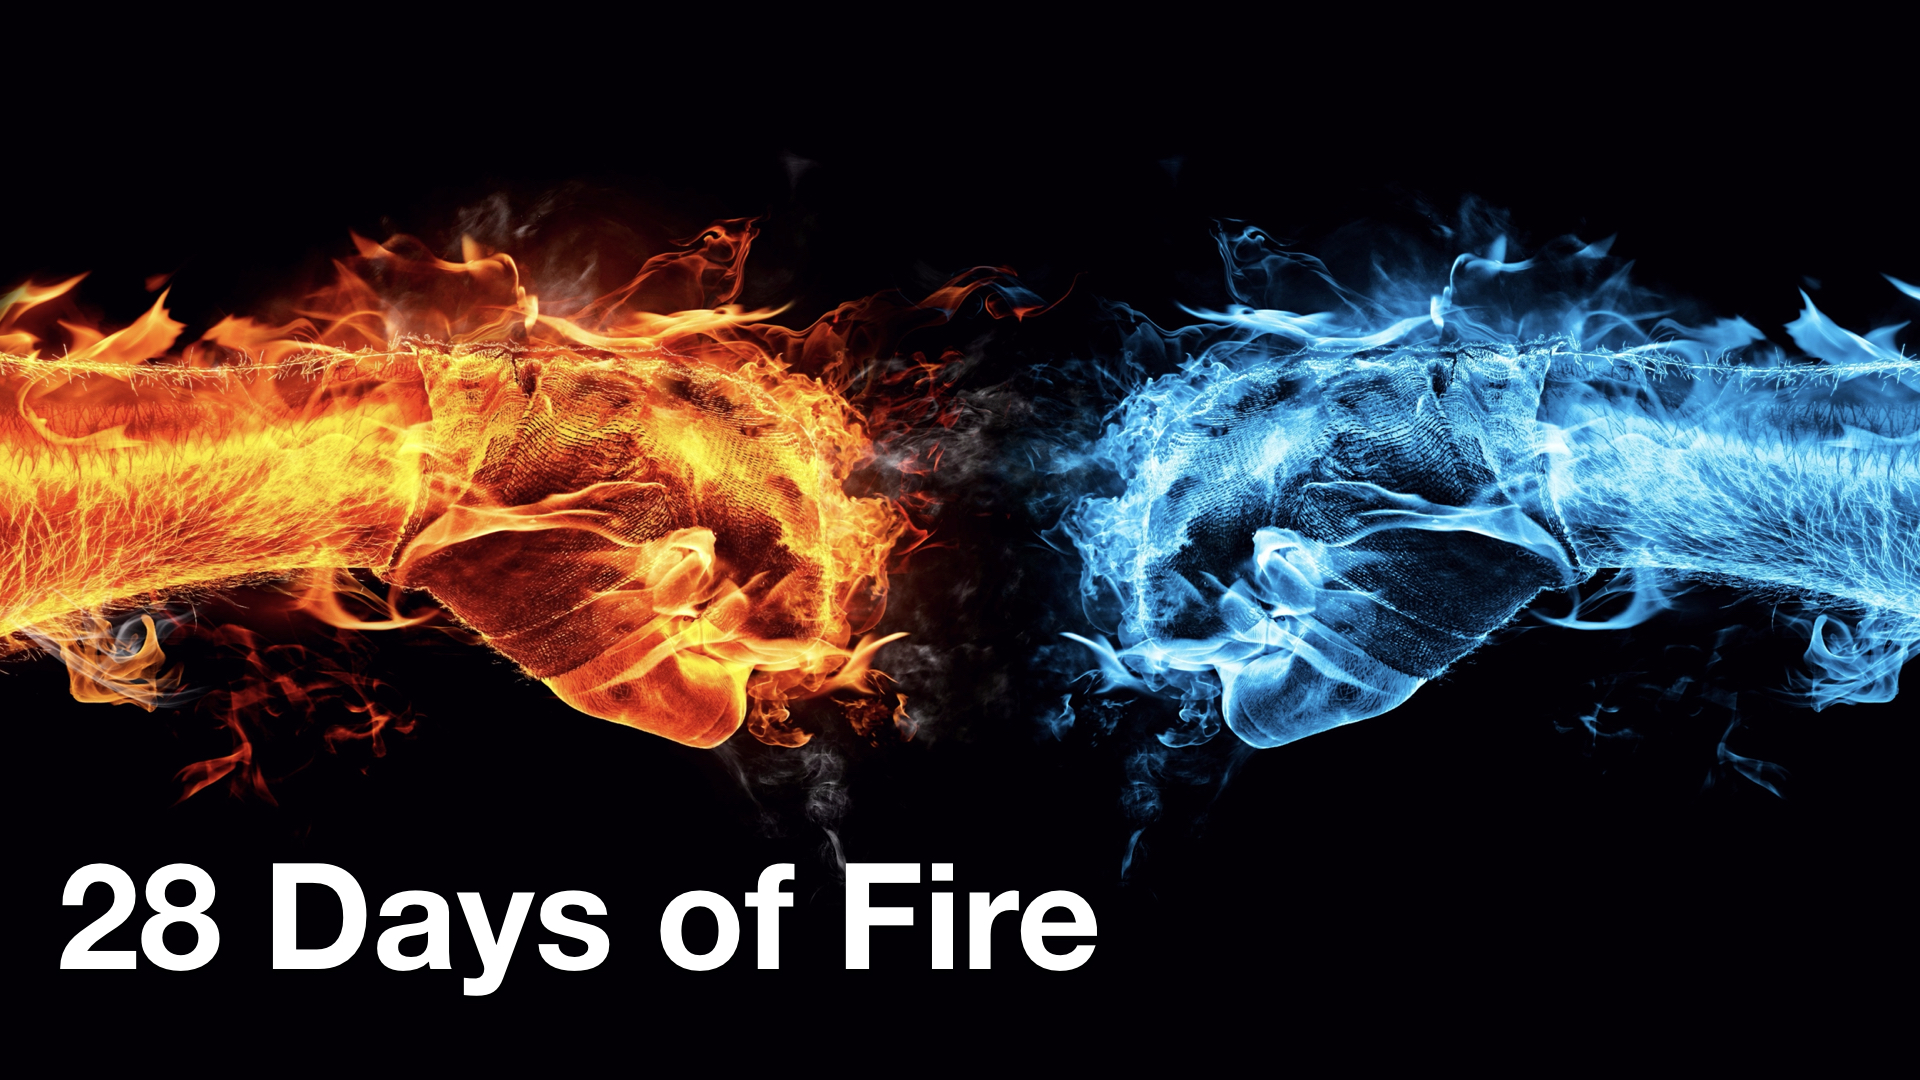 28 Days of Fire part 4 by Lance Steeves